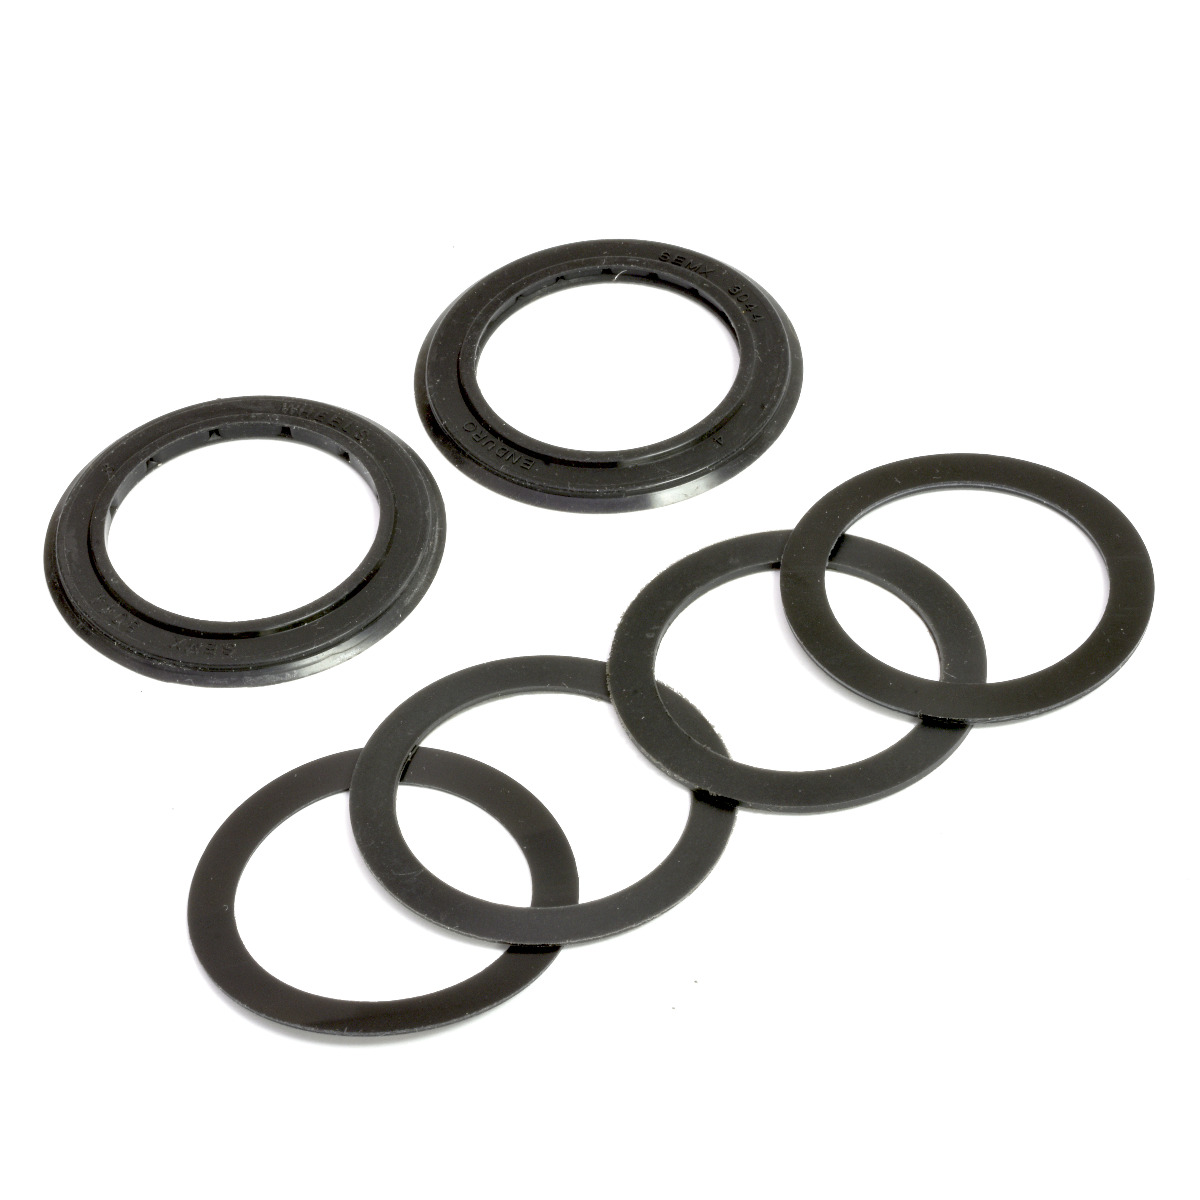 Wheels Manufacturing Inc. Repair Pack for 30mm Spindle Bottom Brackets